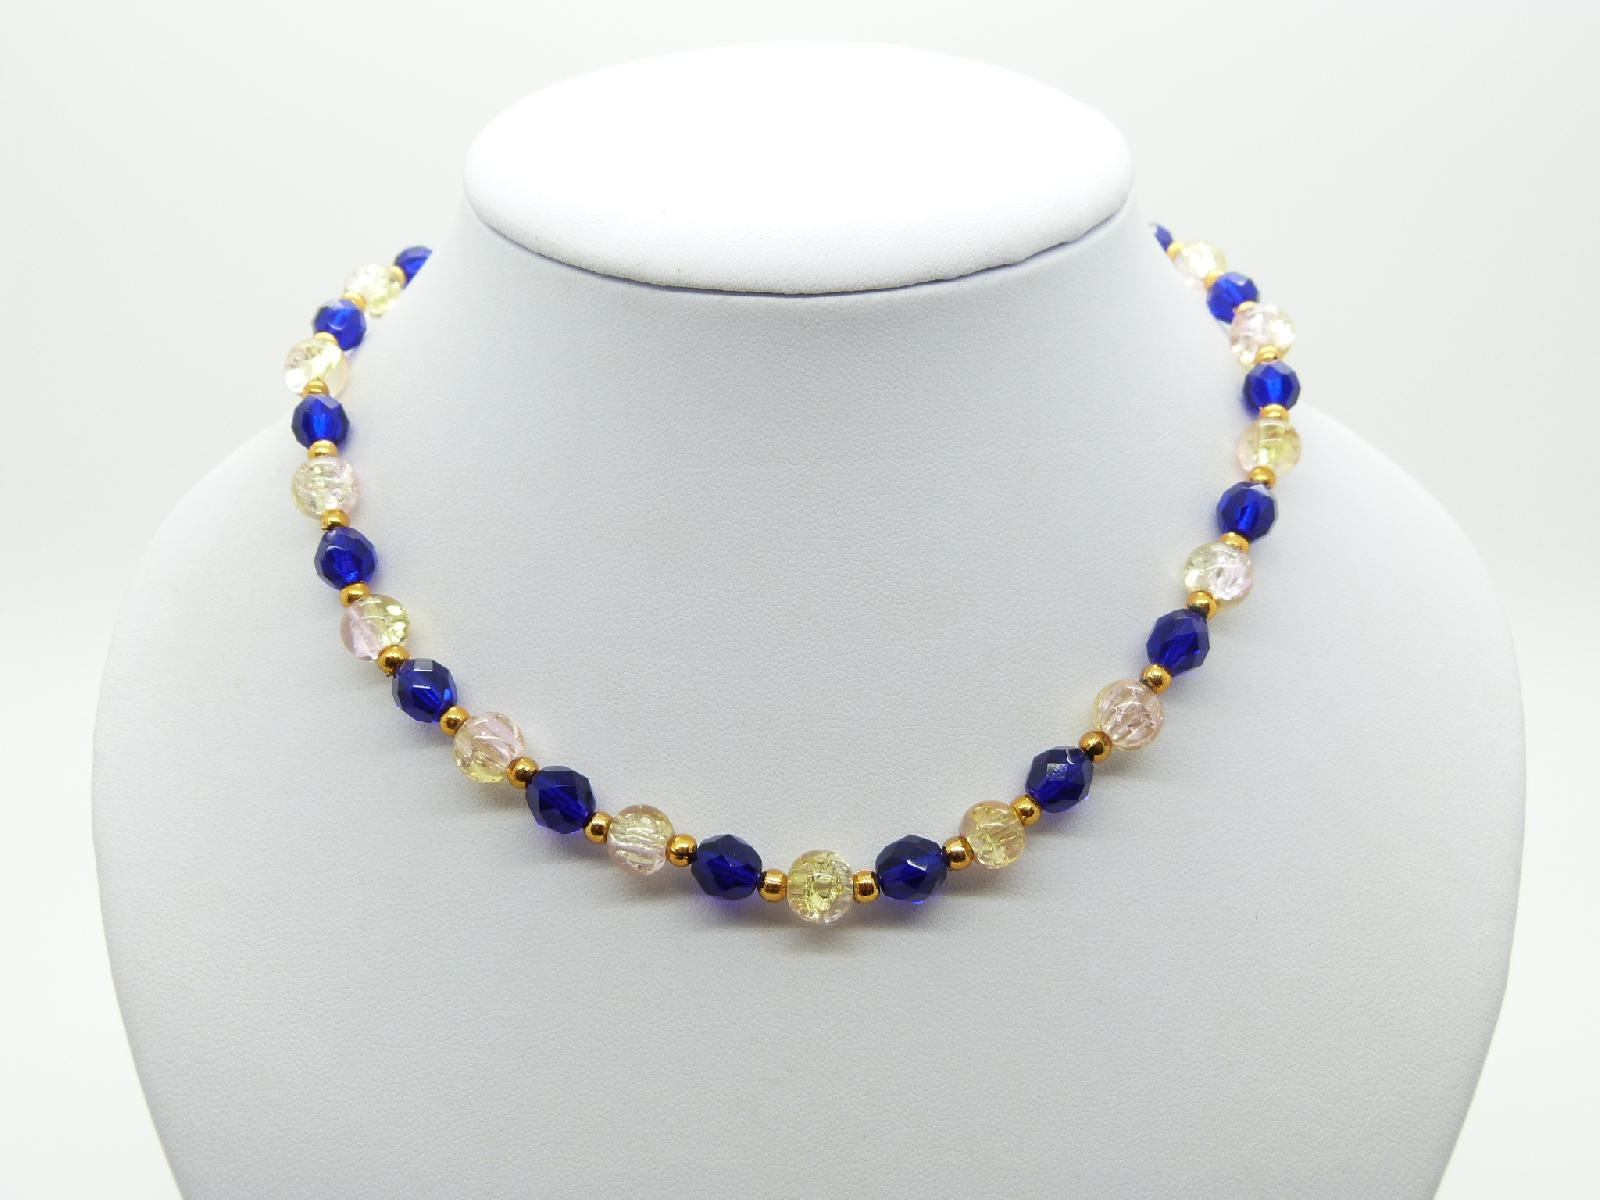 £10.00 - Vintage Redesigned Blue Glass and Crackle Bead Glass Necklace 41cms Long